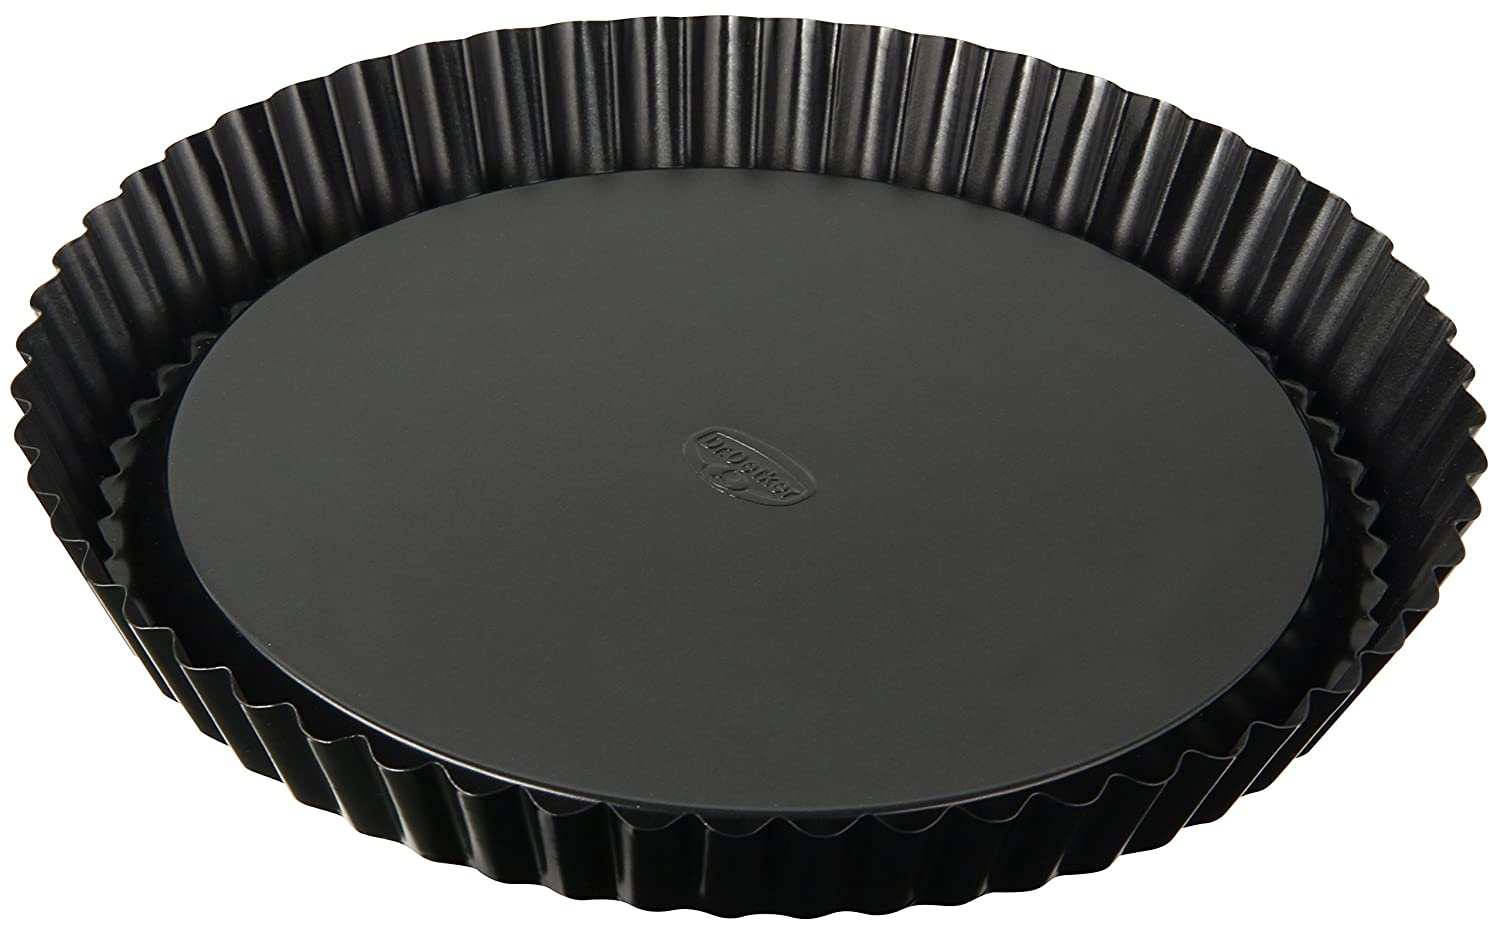 Dr. Oetker Tradition 28 cm Non-Stick Bakeware Flan Tin, Black Leifheit 1449